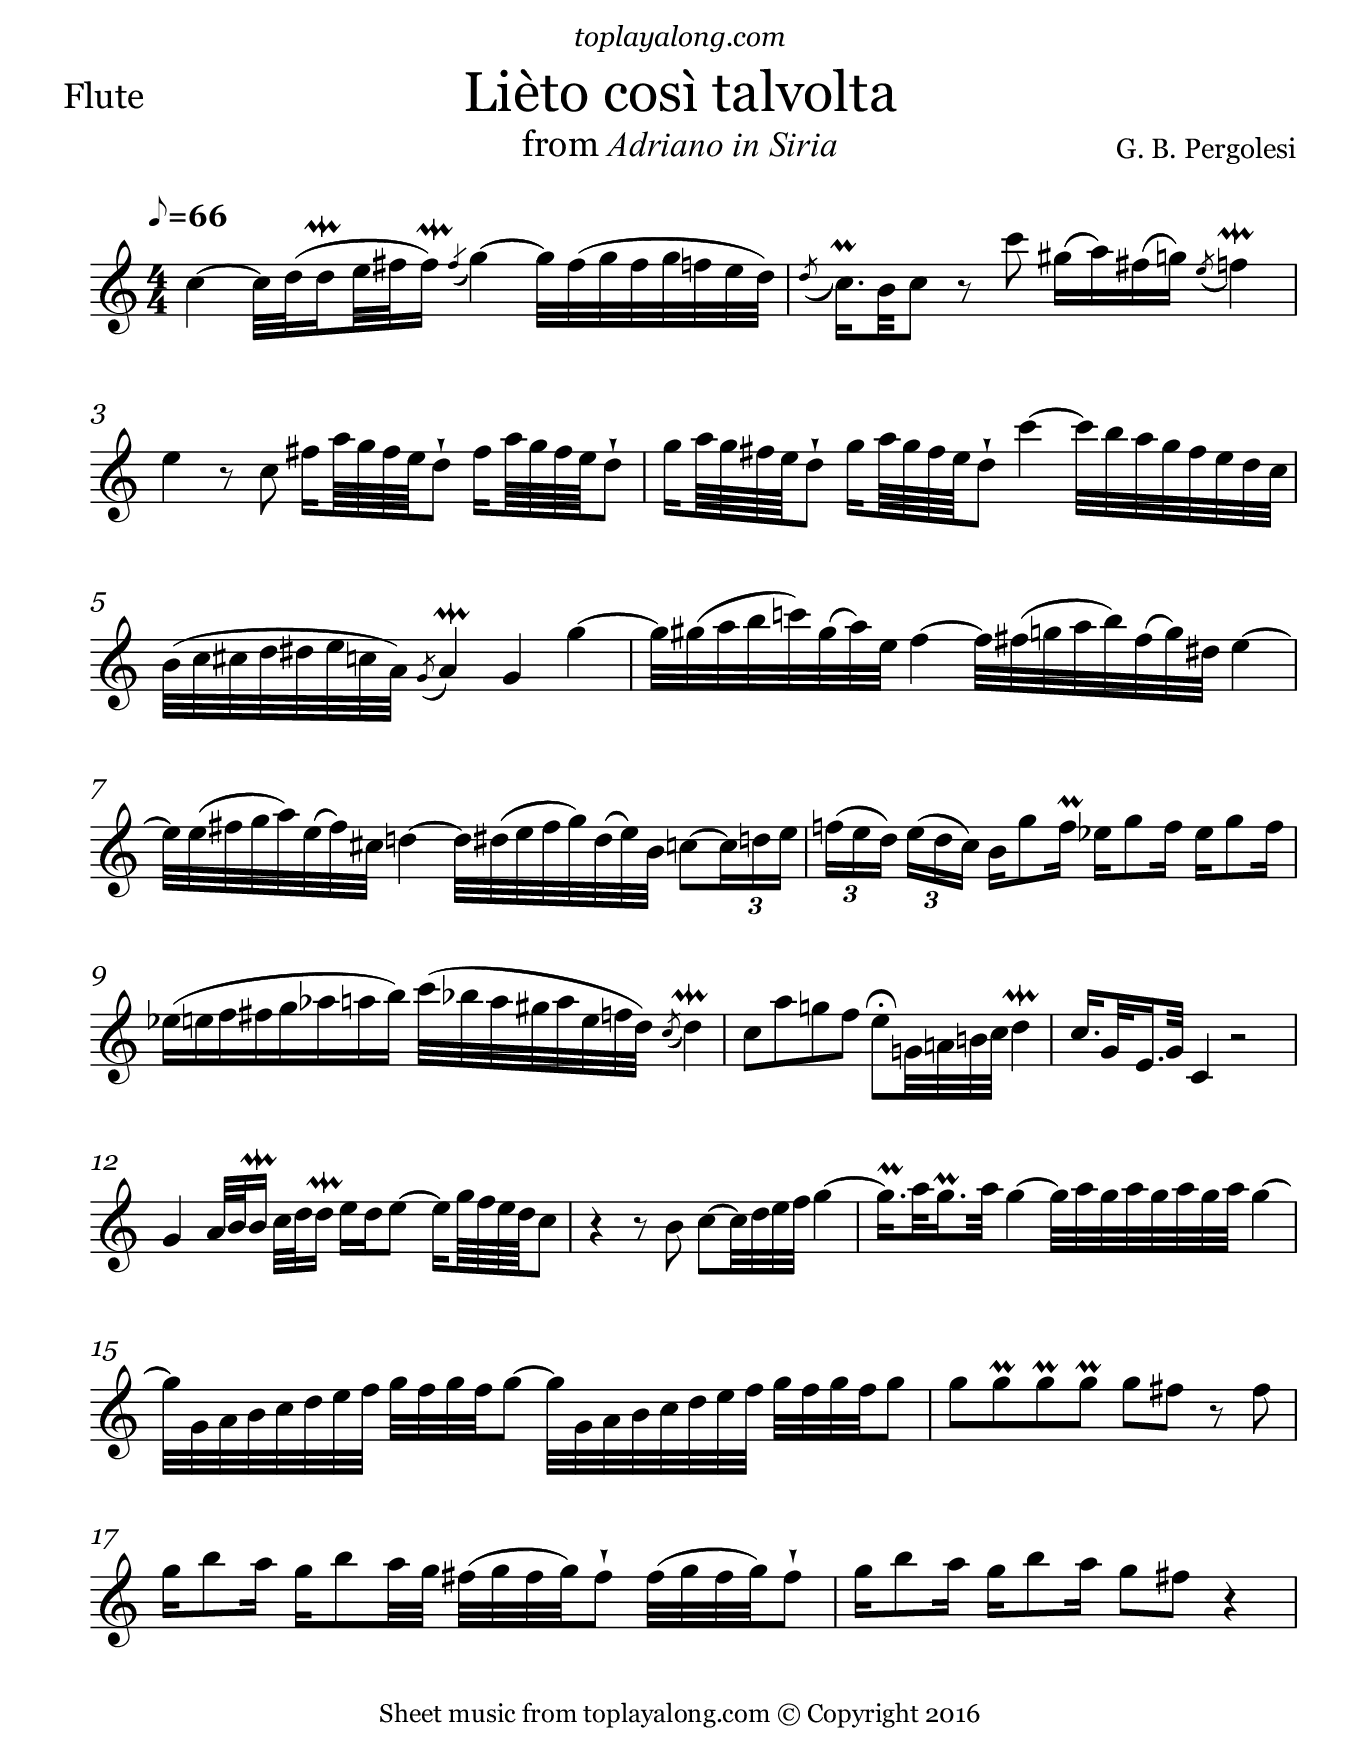 Lièto così talvolta from Adriano in Siria by Pergolesi. Sheet music for Flute, page 1.